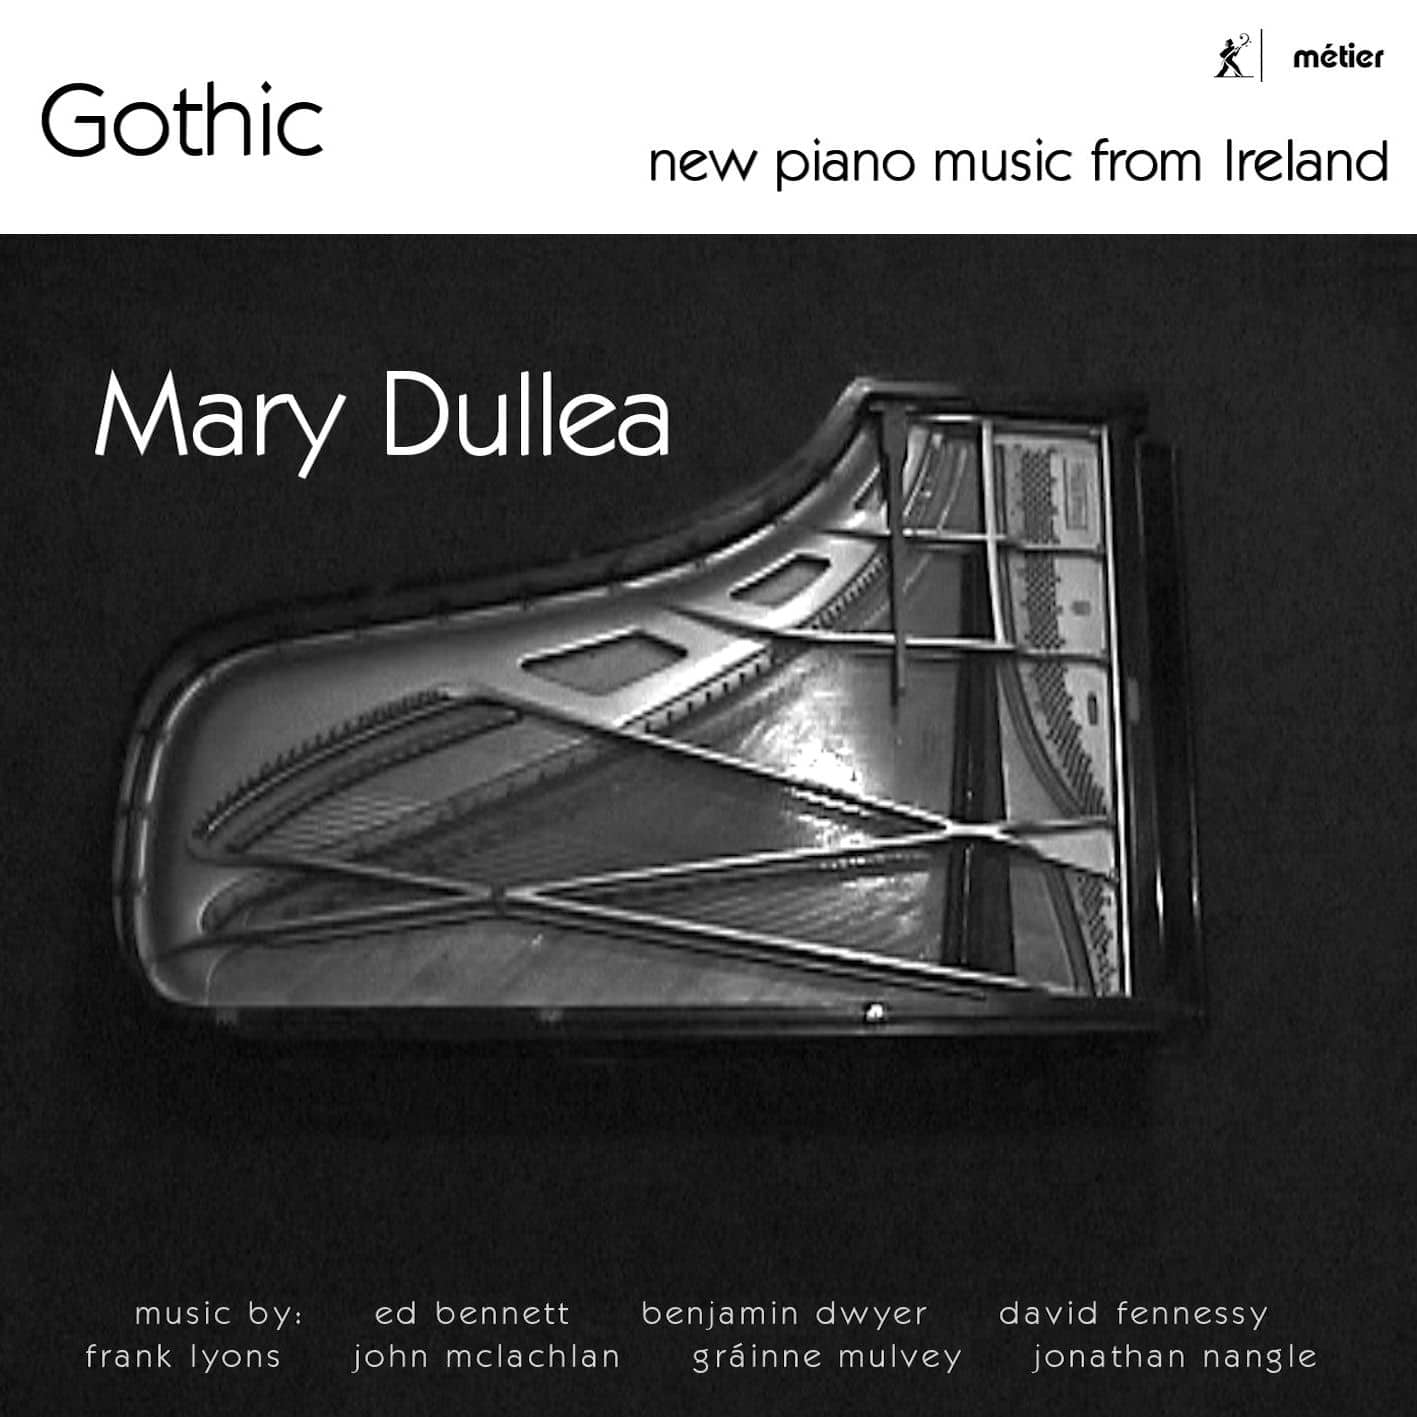 Gothic: New piano music from Ireland